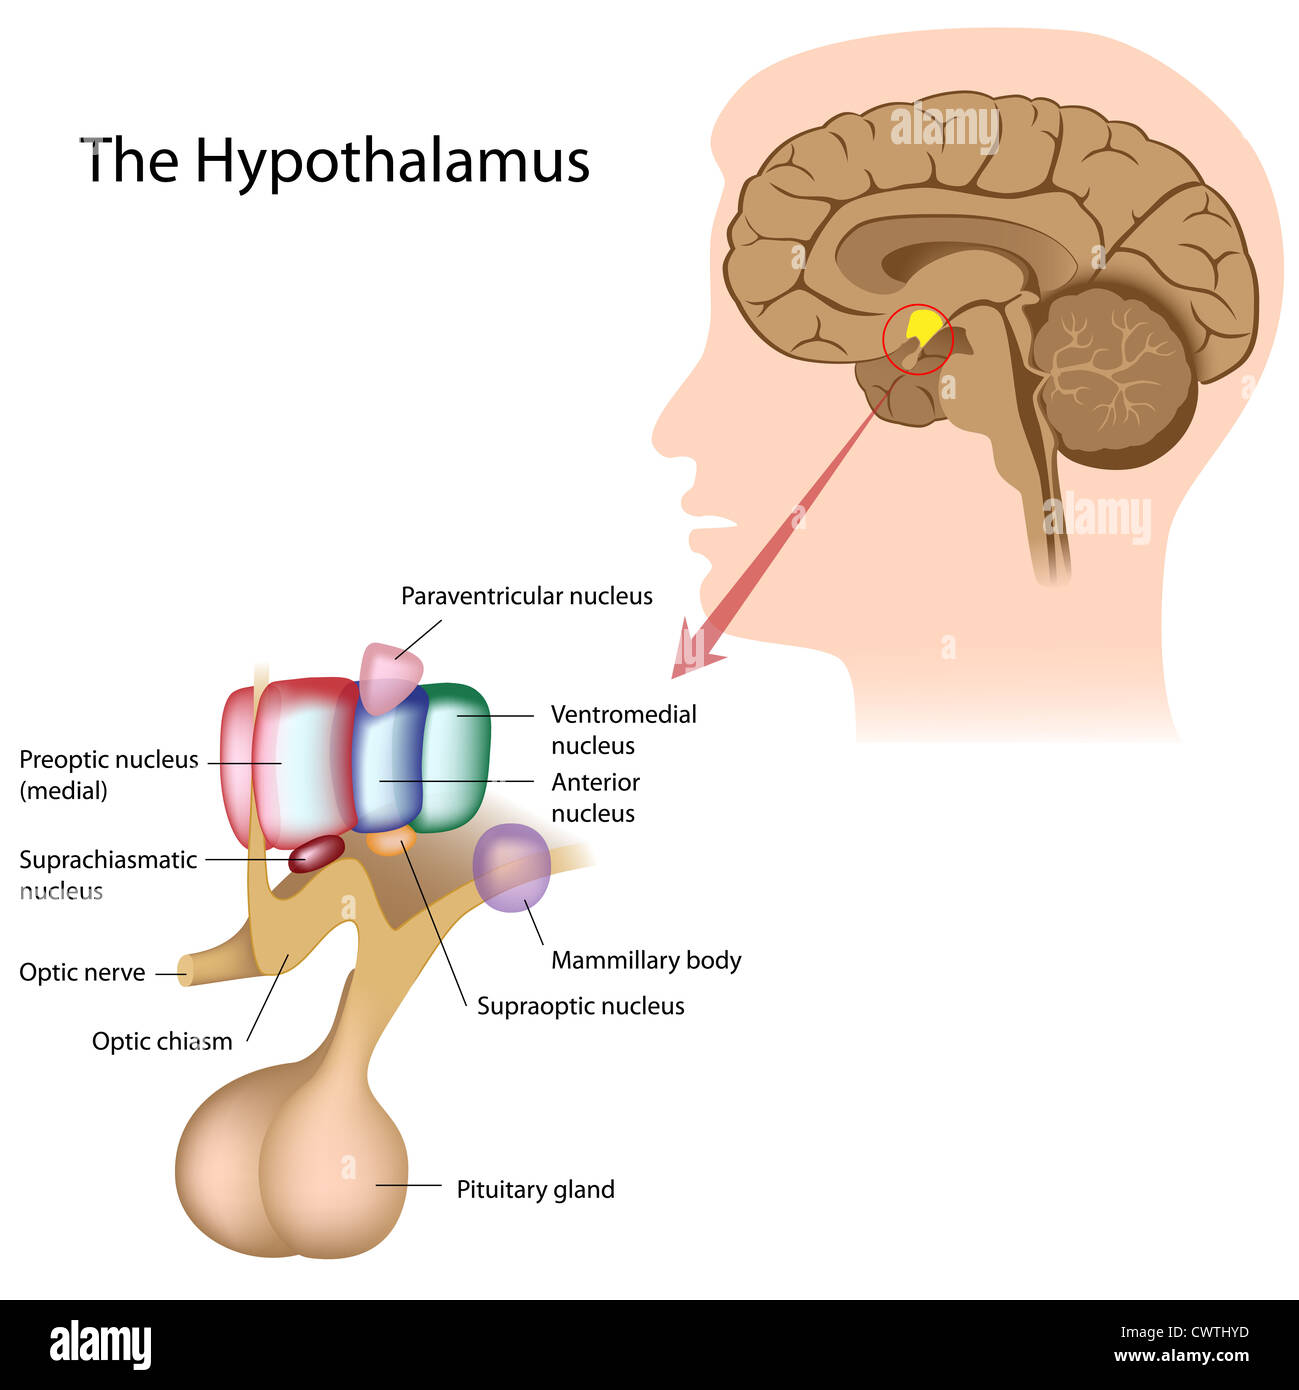 Hormone Hypothalamus Anatomy Diagram Stock Photos & Hormone ...